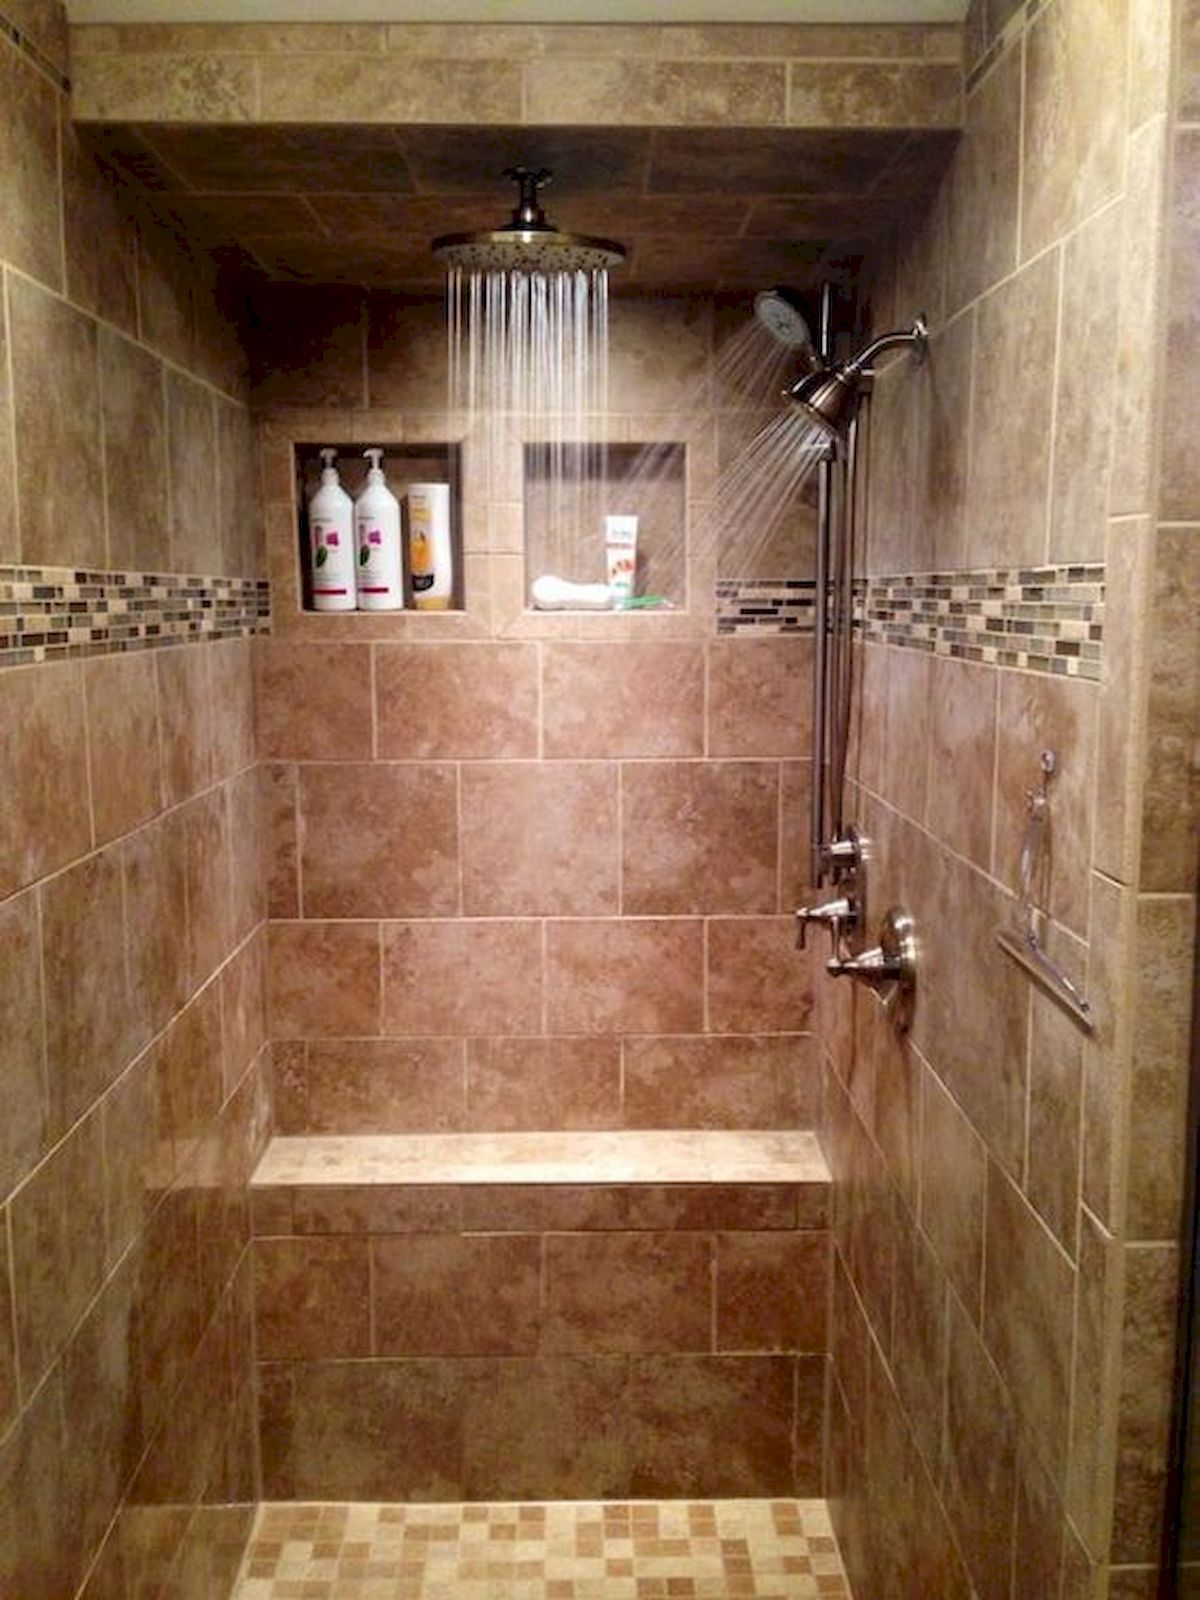 Adorable 46 Fantastic Walk In Shower No Door For Bathroom Ideas Source Https Artmyideas Com 2019 Shower Remodel Bathroom Remodel Master Tiny House Bathroom